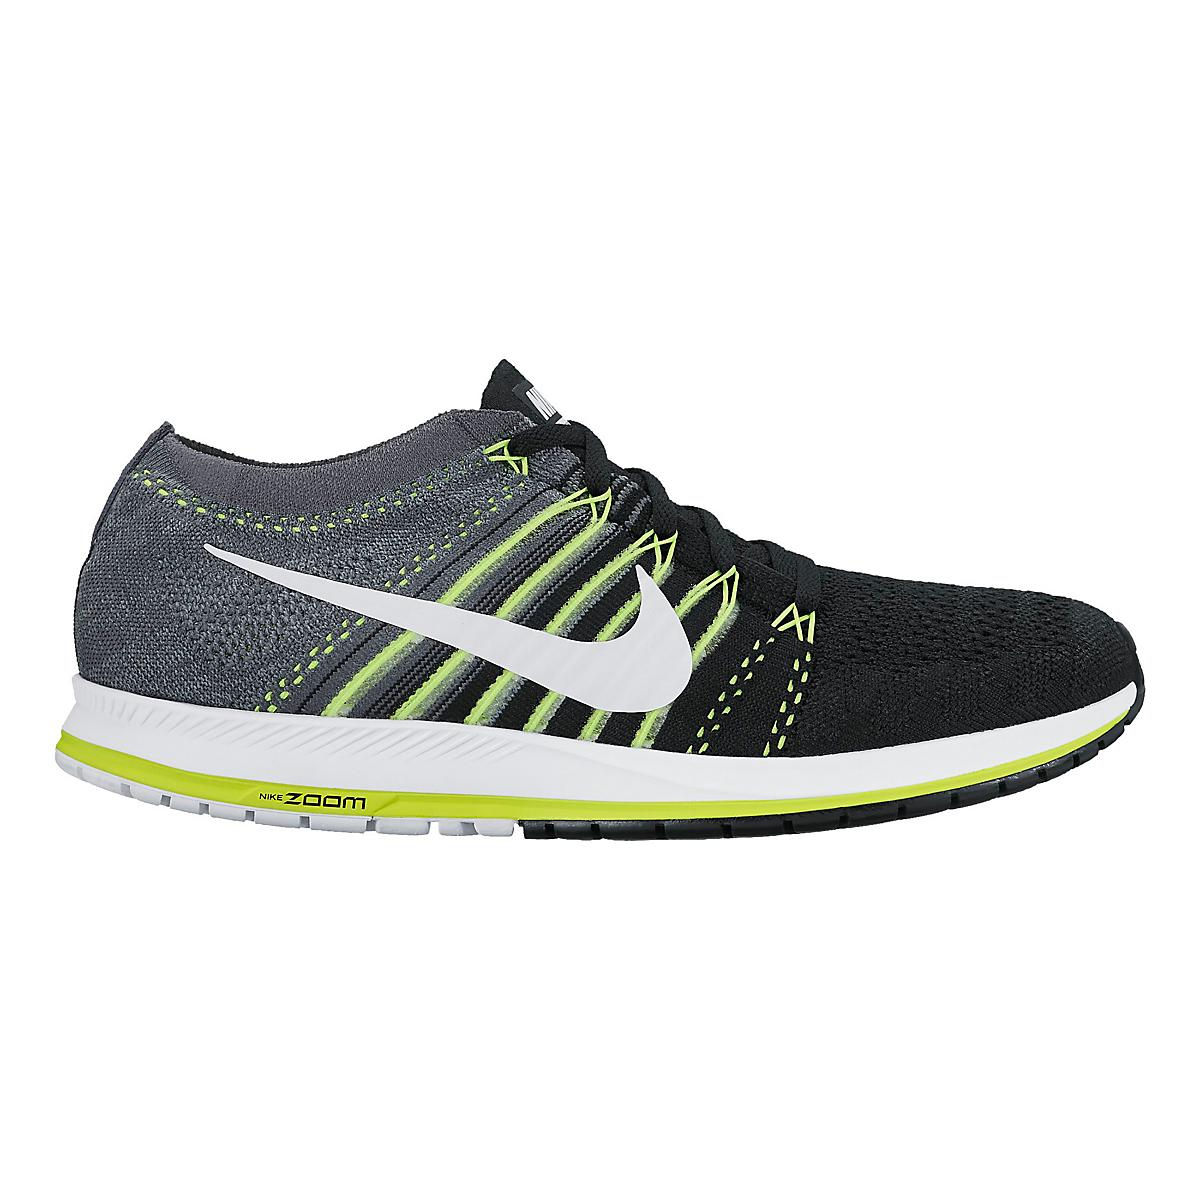 42a64958b290 Nike Air Zoom Flyknit Streak Racing Shoe at Road Runner Sports